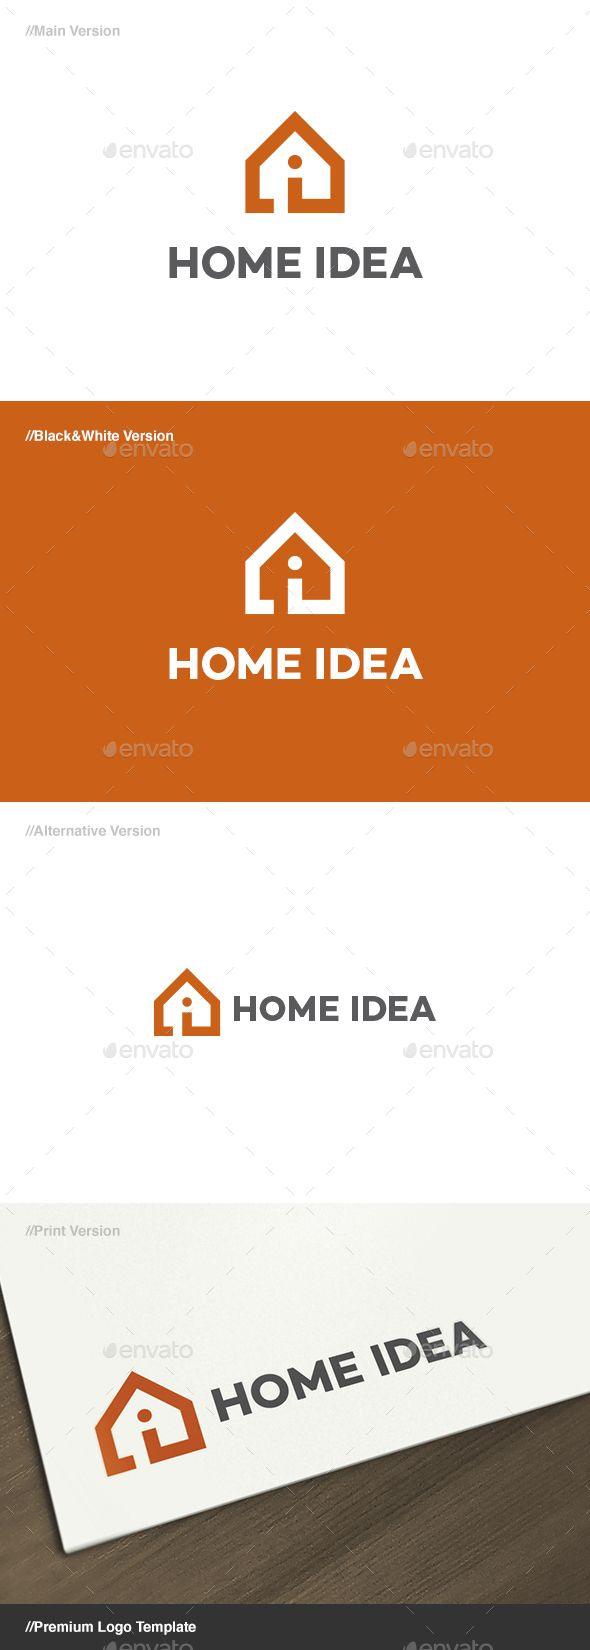 best 25 interior design logos ideas on pinterest interior home idea logo